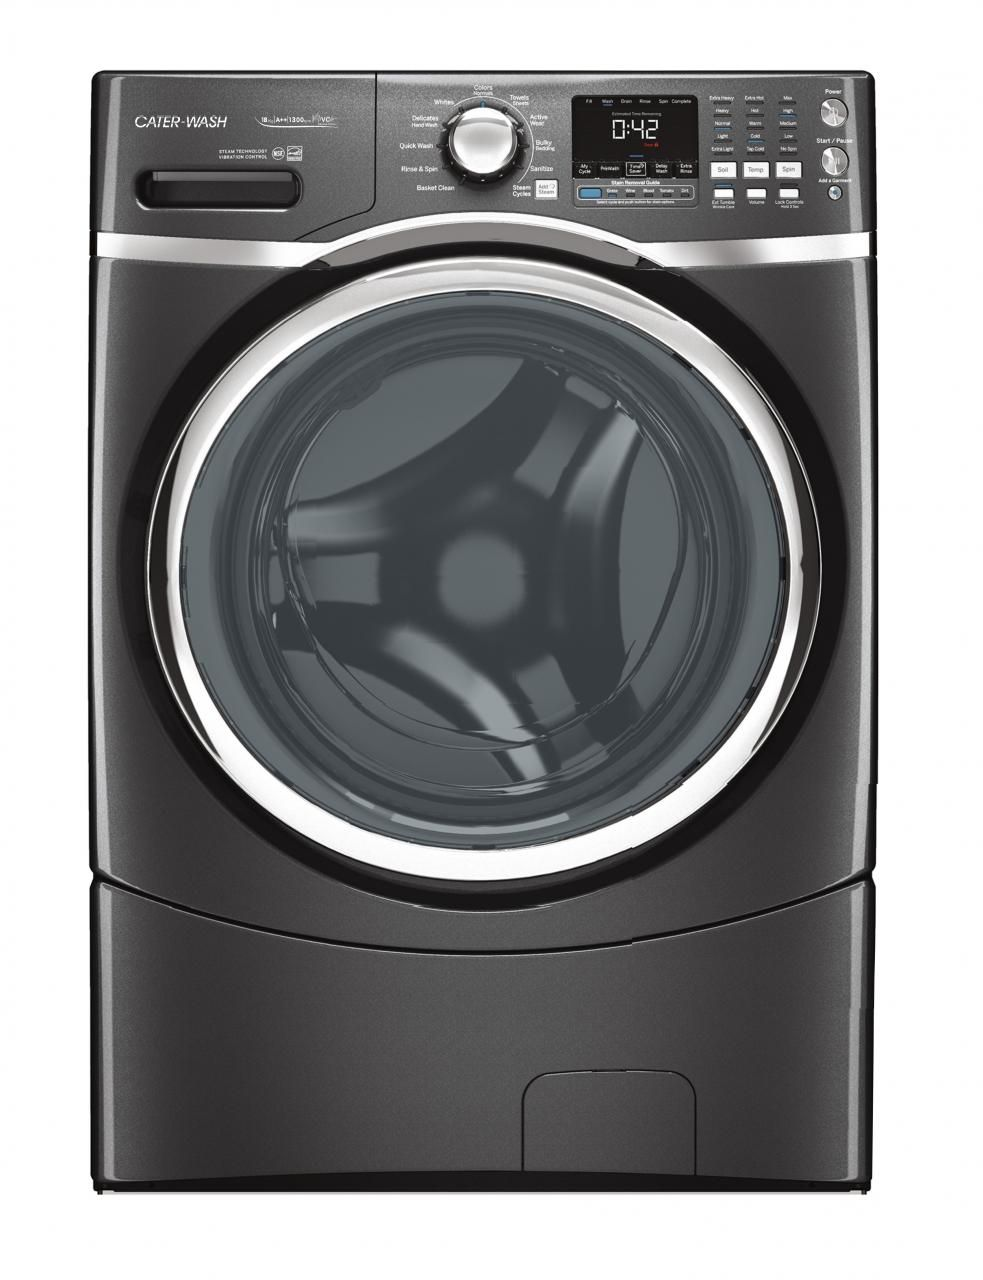 Ge White Laundry Center With 3 9 Cu Ft Washer And 5 9 Cu Ft 240 Volt Vented Electric Dryer Energy Star Gud27eesnww Laundry Center Stackable Washer Dryer Washer Dryer